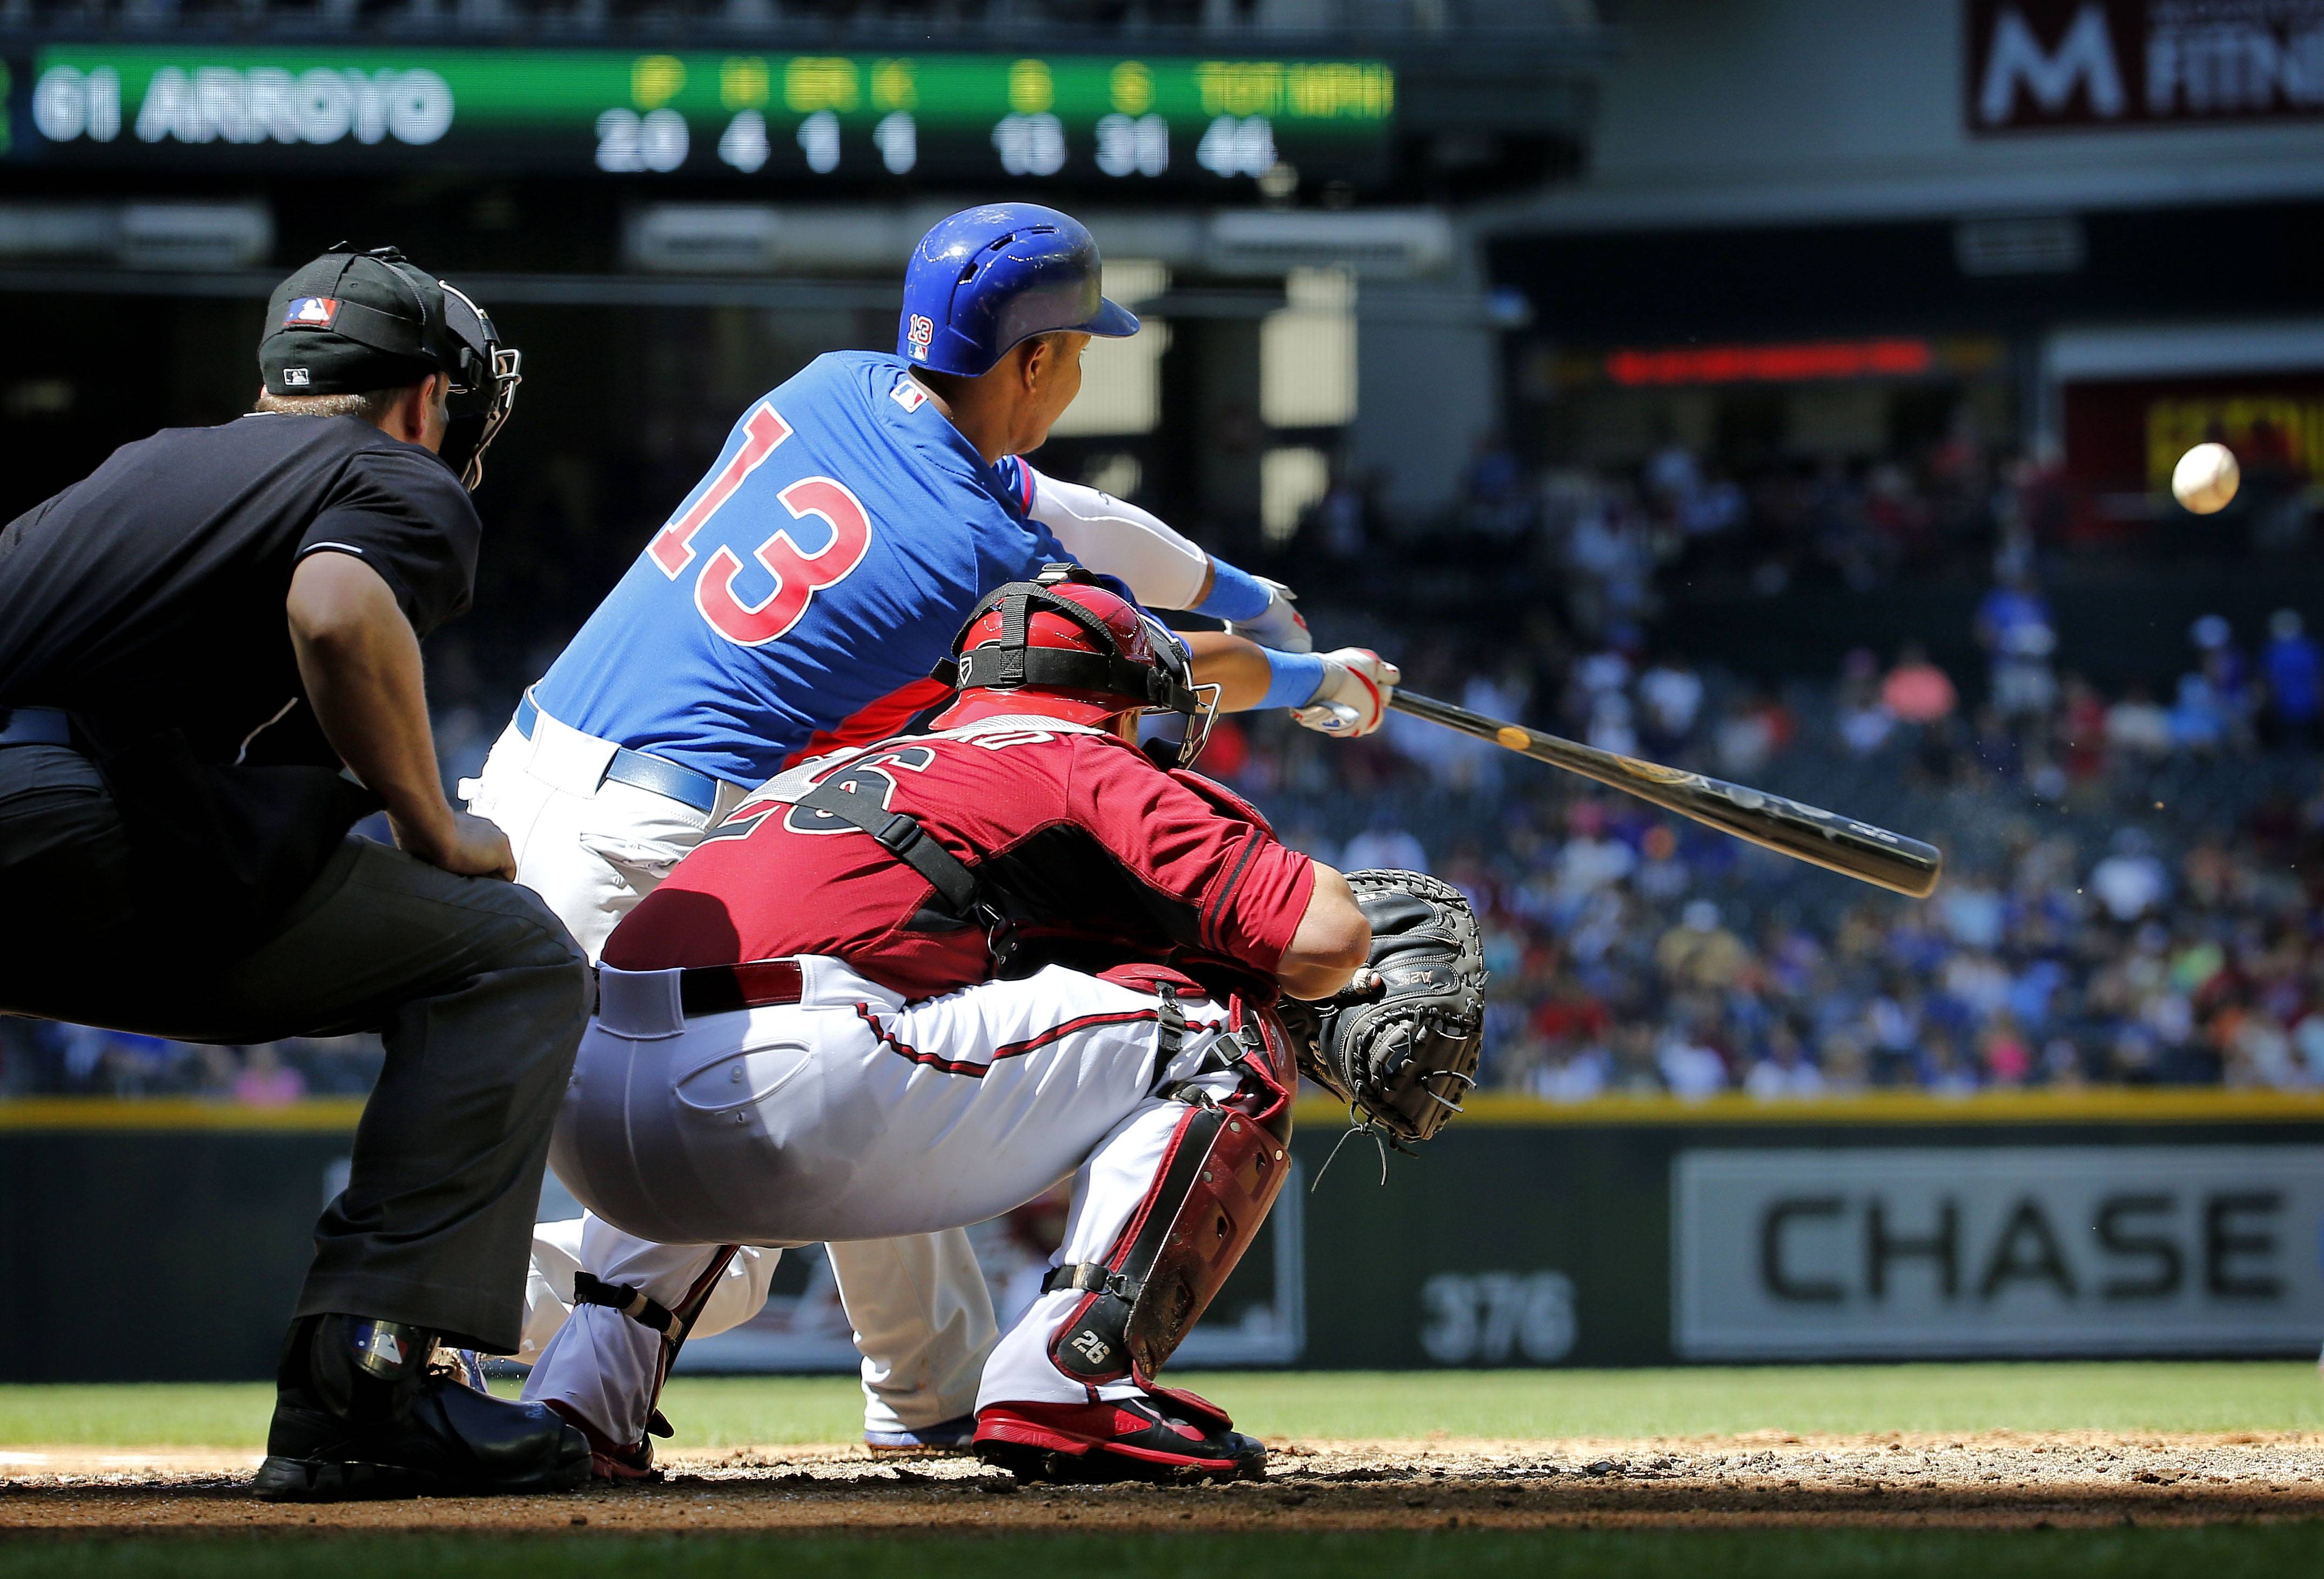 The Cubs' Starlin Castro made only his third Cactus League appearance and first since the opening week of the exhibition season Saturday against the Diamondbacks in Phoenix. Castro was 0-for-2 with a walk.